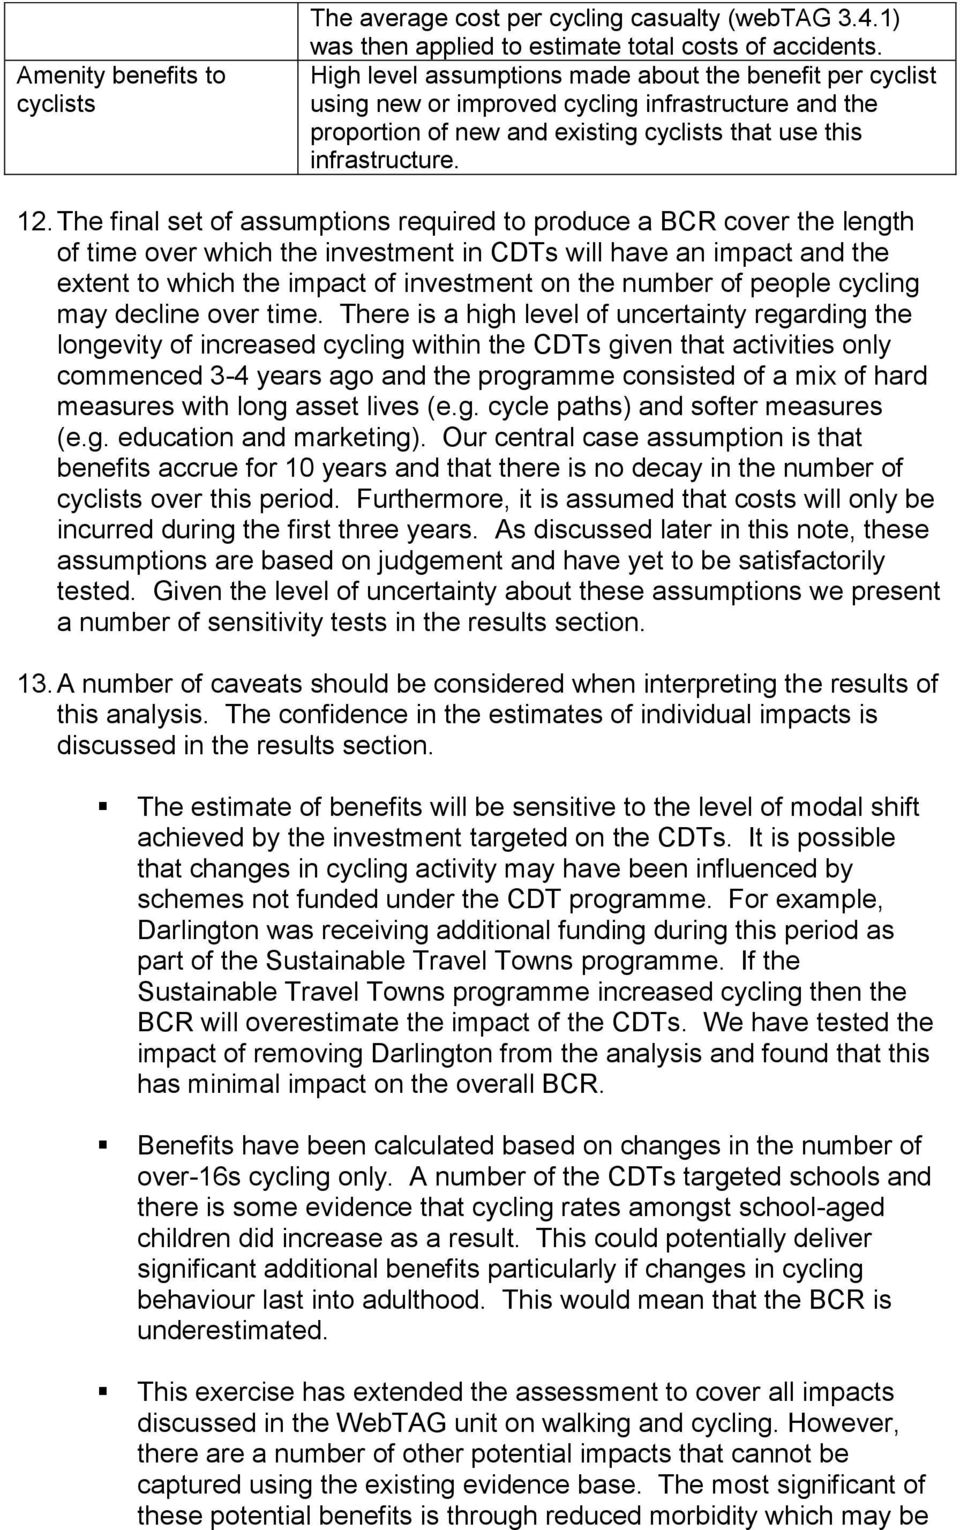 The final set of assumptions required to produce a BCR cover the length of time over which the investment in CDTs will have an impact and the extent to which the impact of investment on the number of